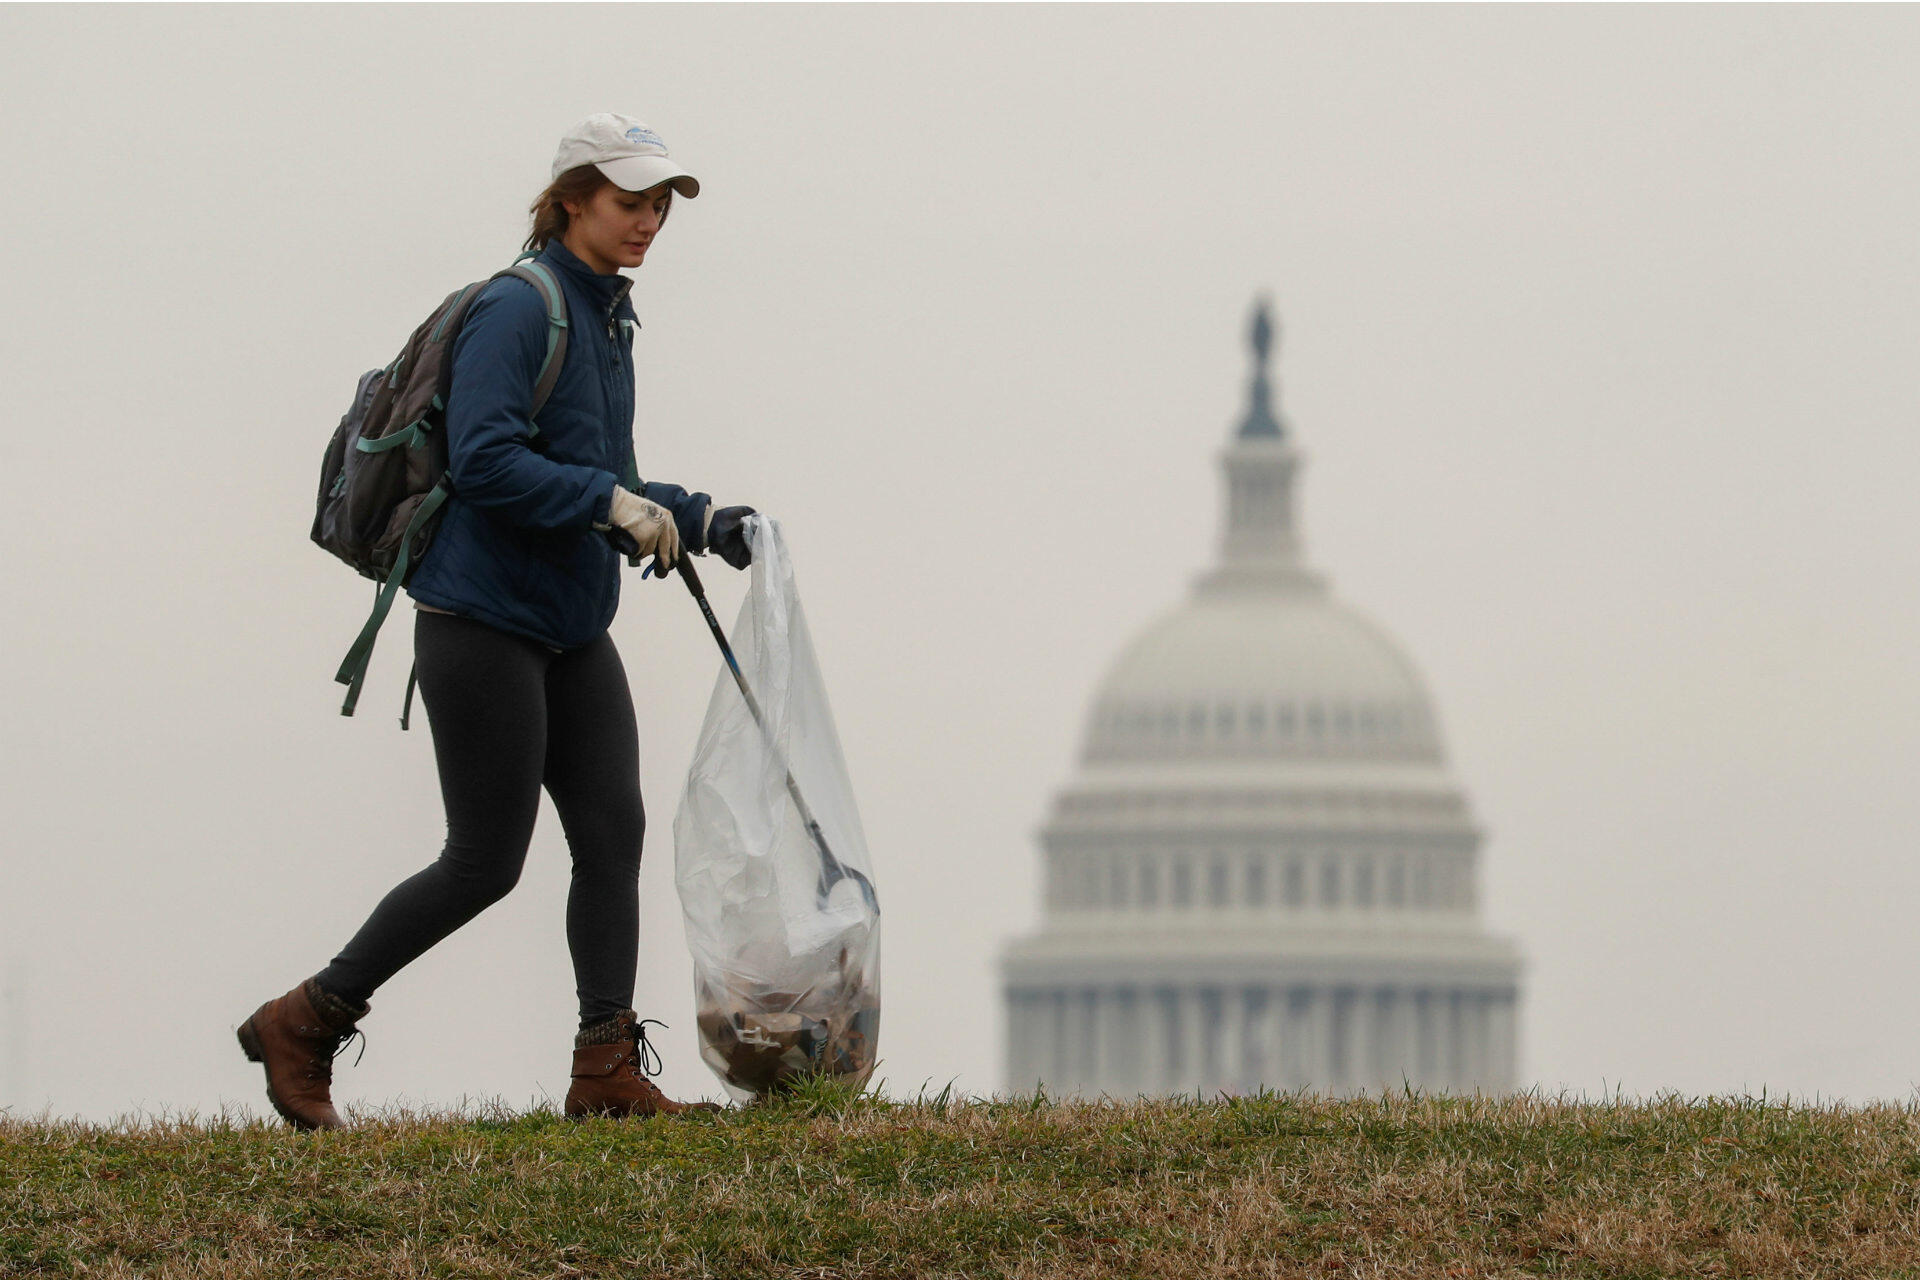 Olivia Anderson of Arlington, VA, joins volunteers, many of whom are furloughed workers, to clean up trash on the National Mall in response to the partial government shutdown in Washington, DC, on January 4, 2019. The current shutdown has not affected three-quarters of the US government, including Defence and the Postal Service, which benefit from secure funding. But 800,000 federal employees have been furloughed or are working without pay. The departments of Homeland Security, Transportation and Interior, which includes the National Park Service, are among those affected, as well as agencies including the Internal Revenue Service, the Environmental Protection Agency and NASA.